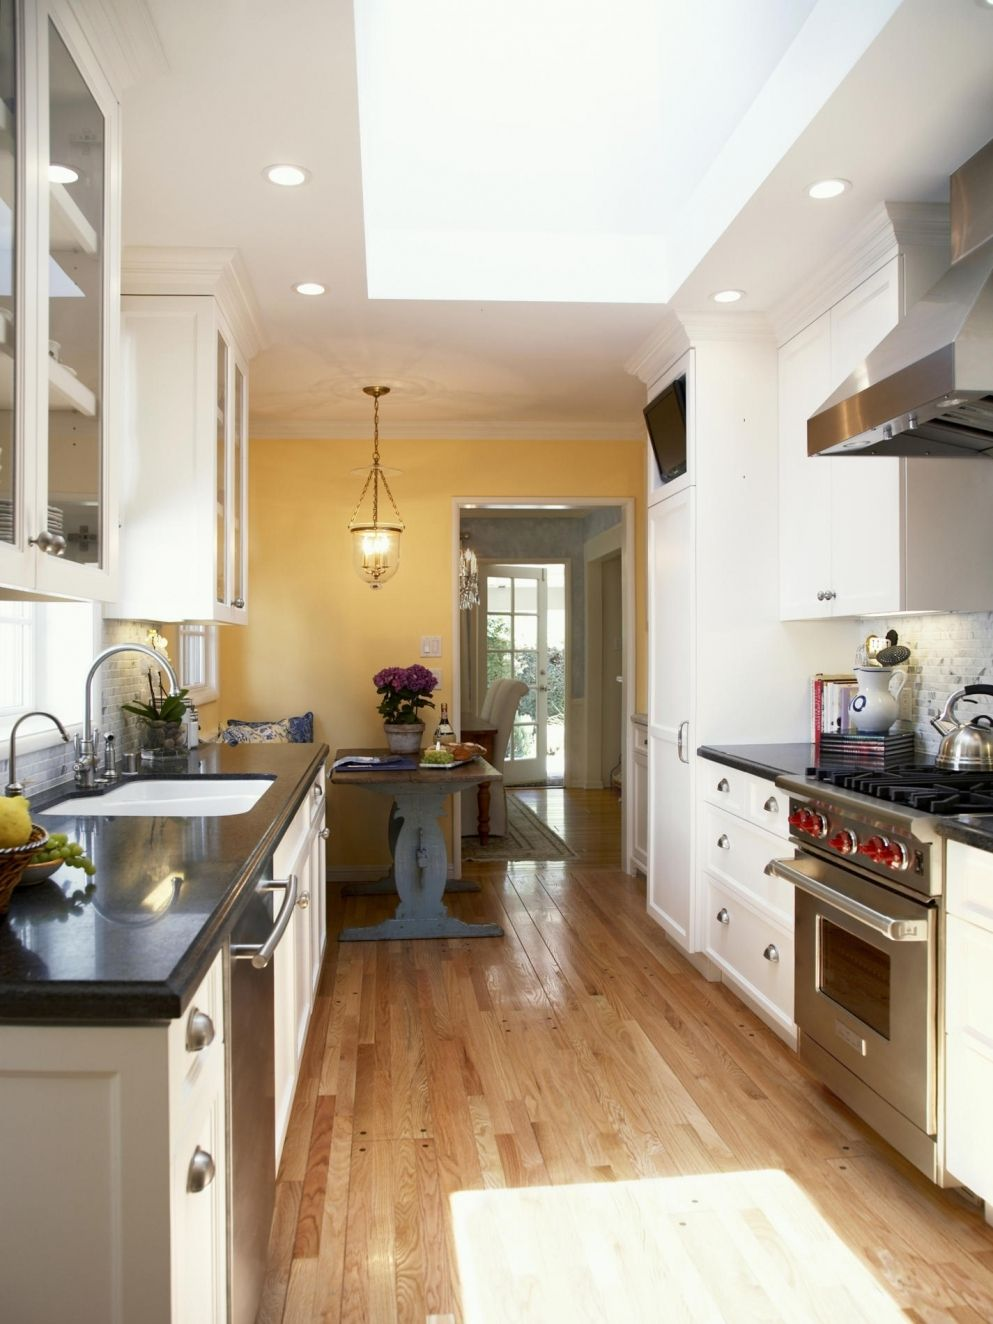 kitchen design ideas for small galley kitchens - wine themed kitchen